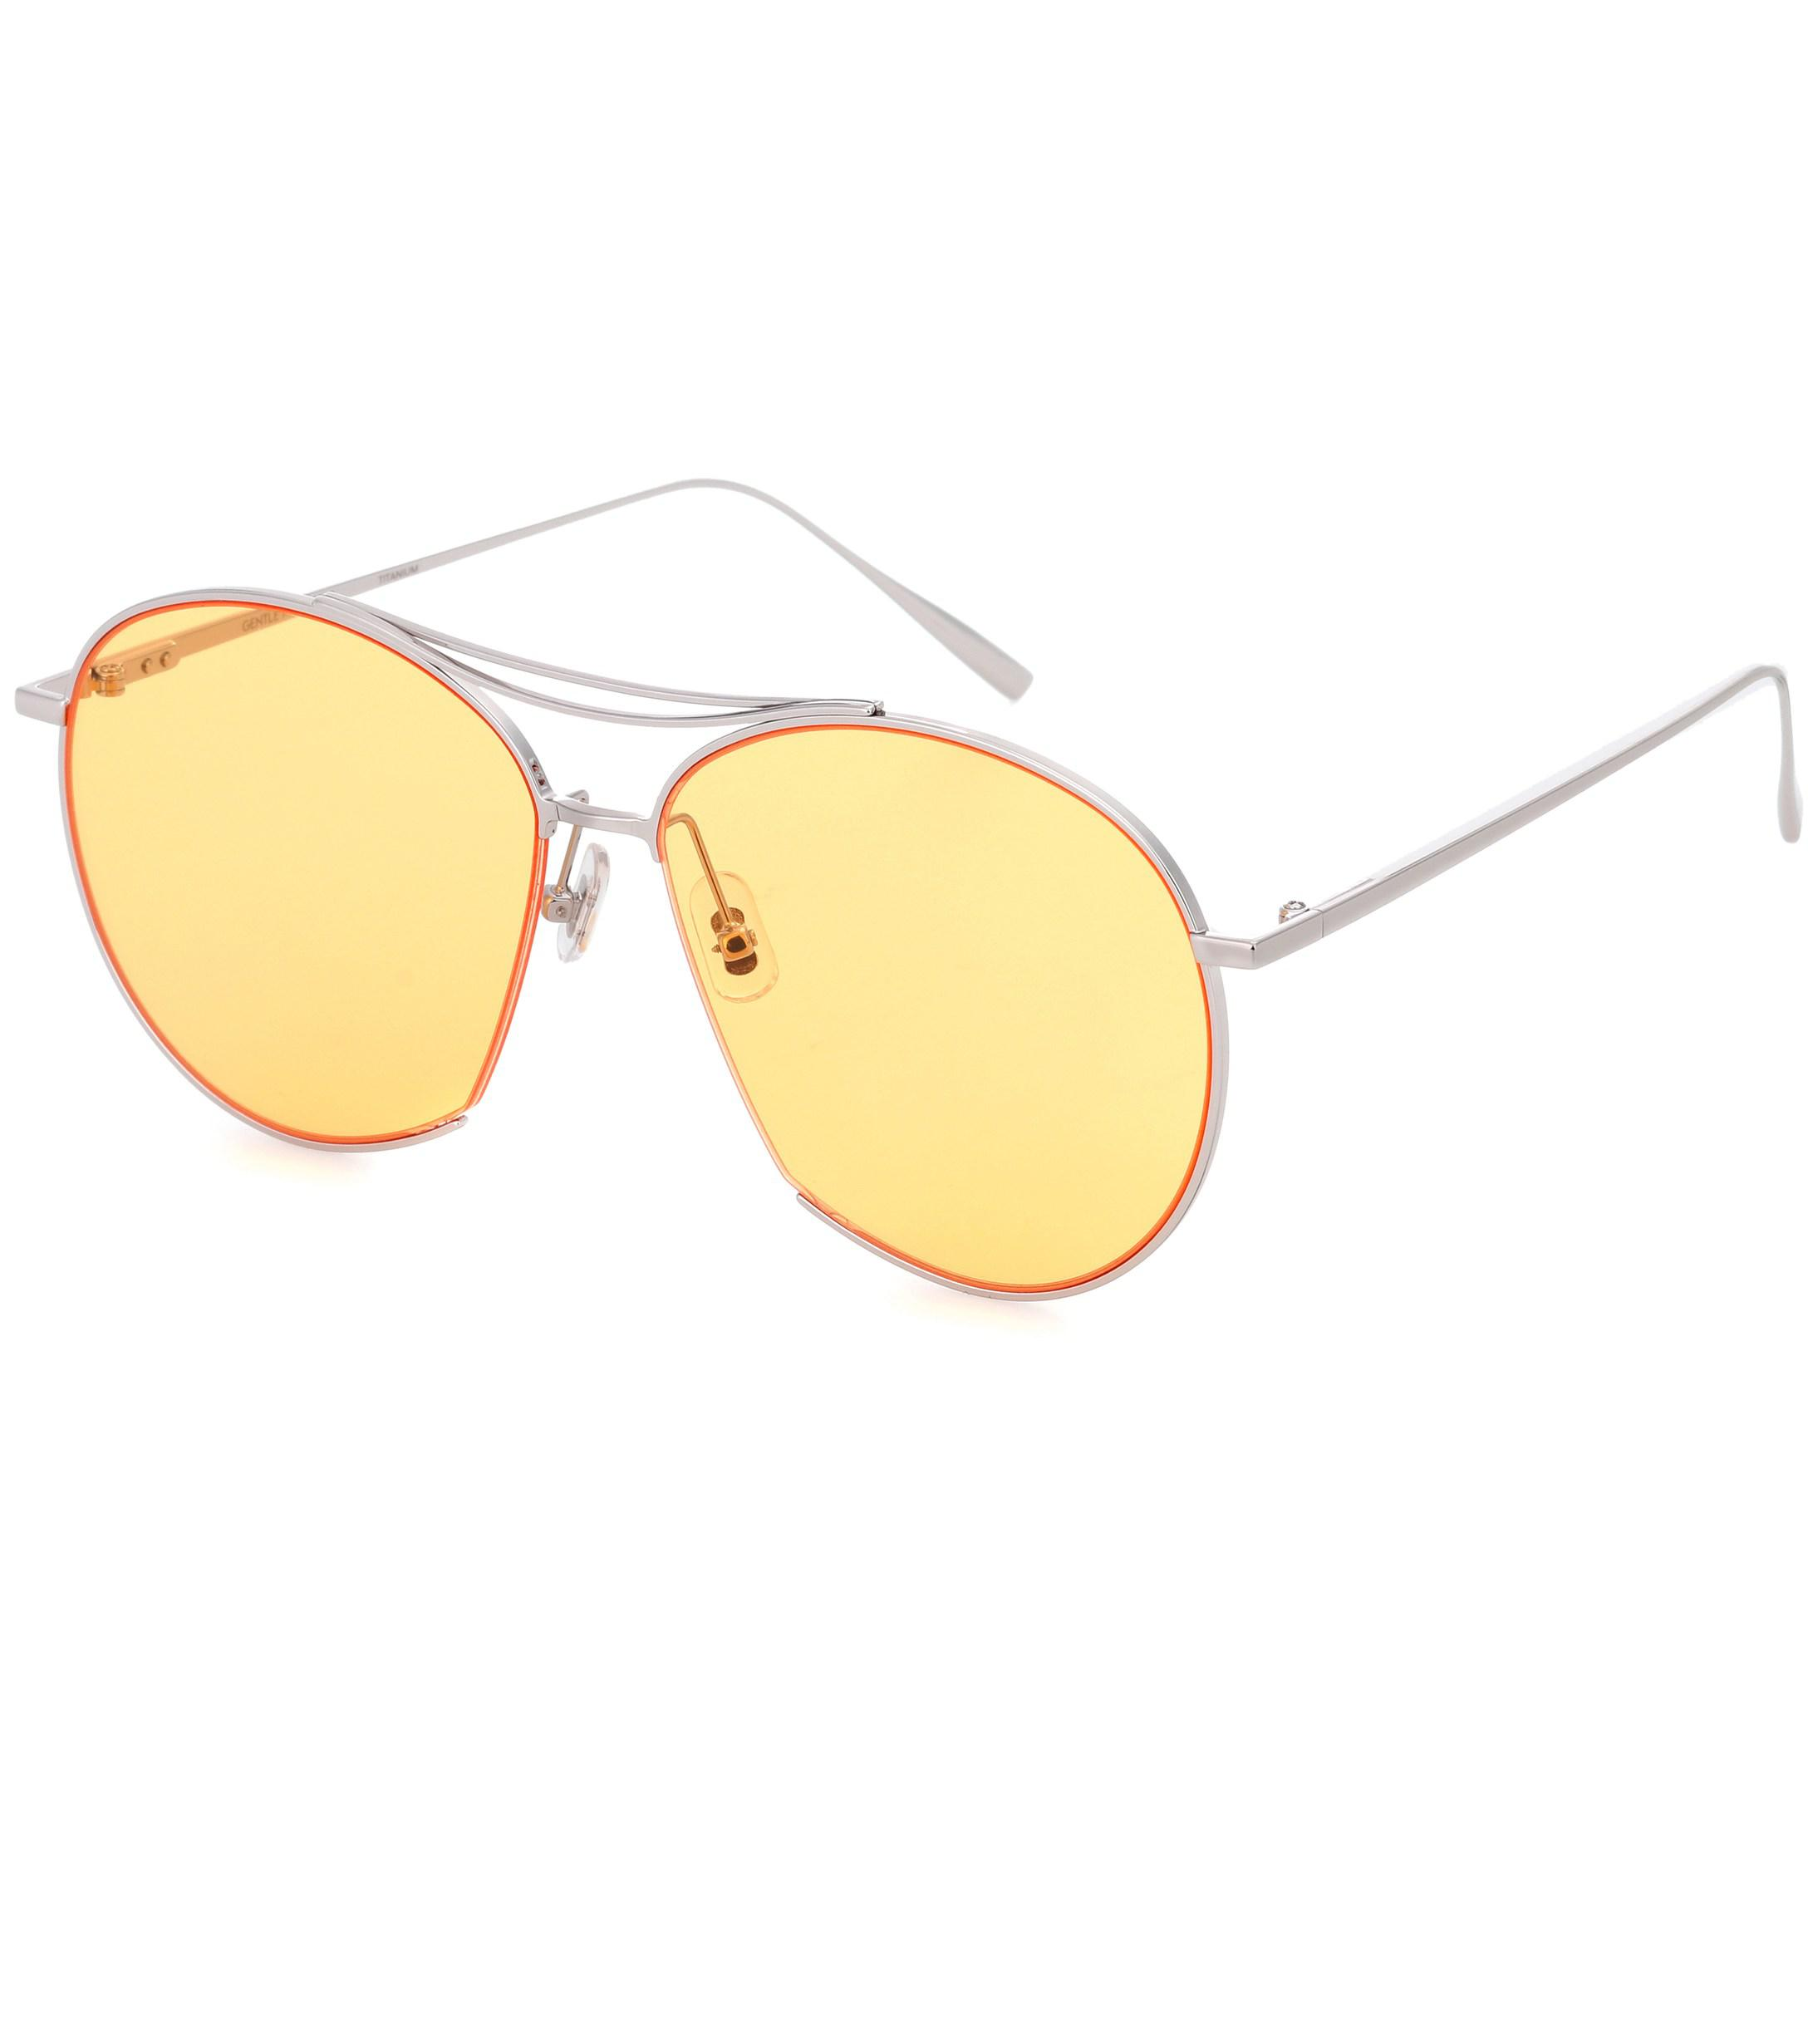 09e2bcffd4f Lyst - Gentle Monster Jumping Jack Aviator Sunglasses in Yellow